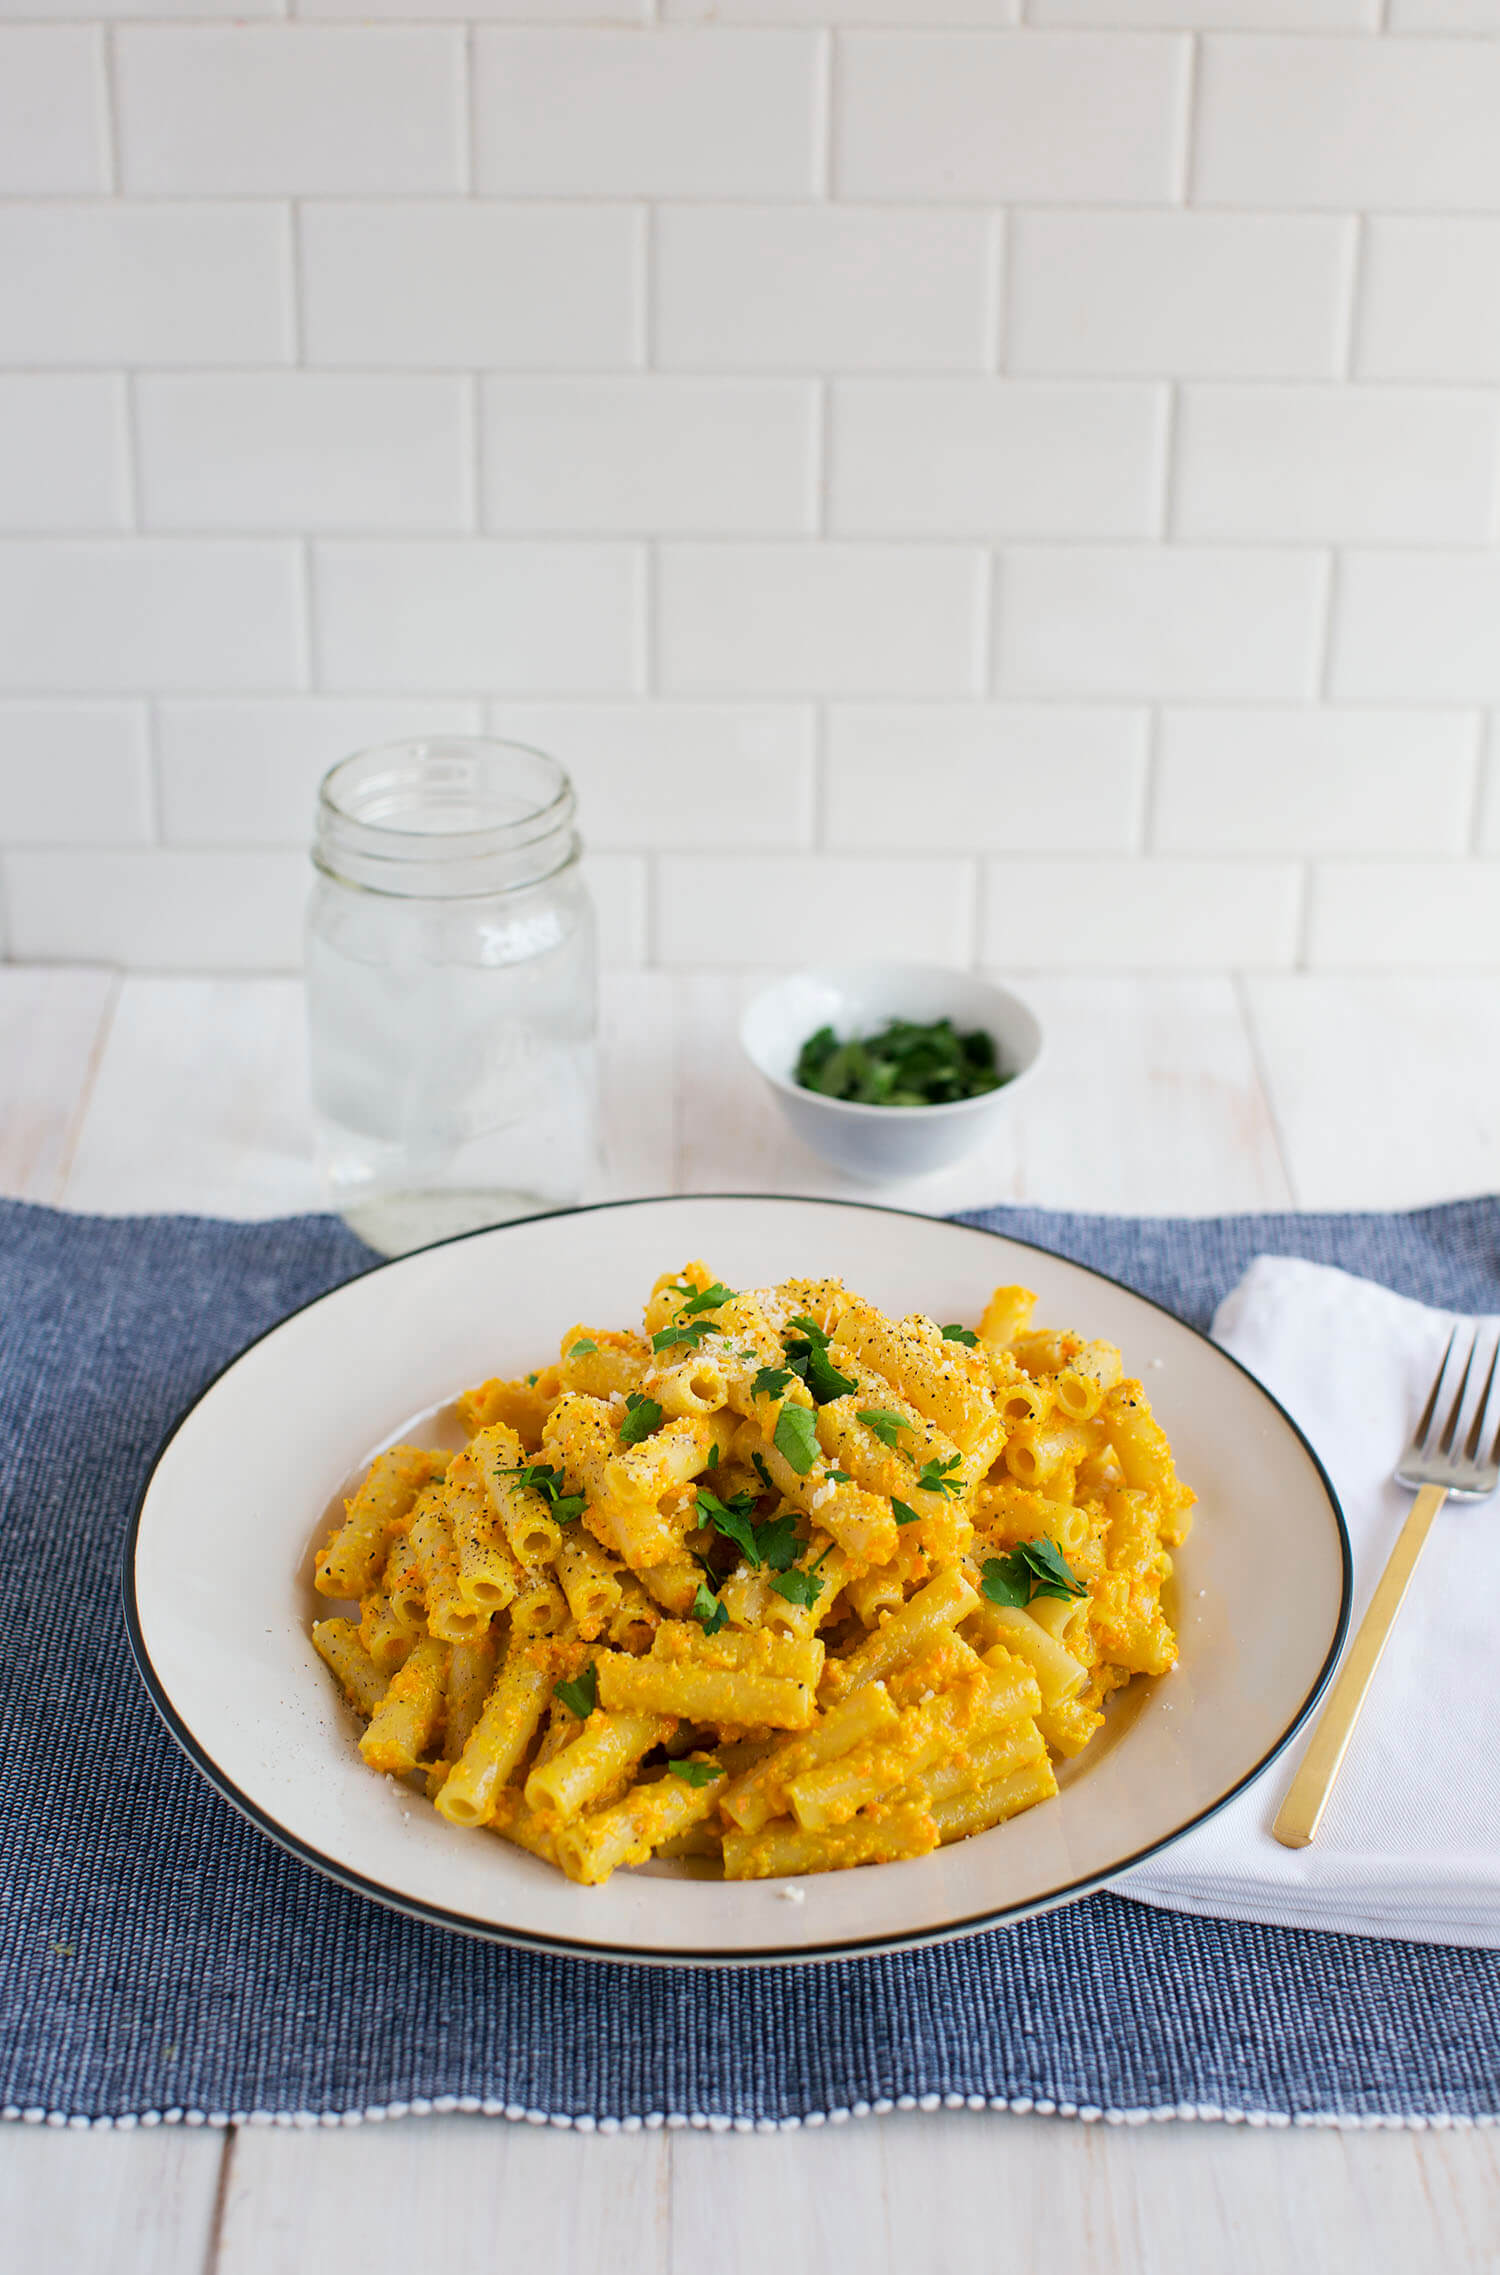 Carrot Pesto Pasta (via abeautifulmess.com)